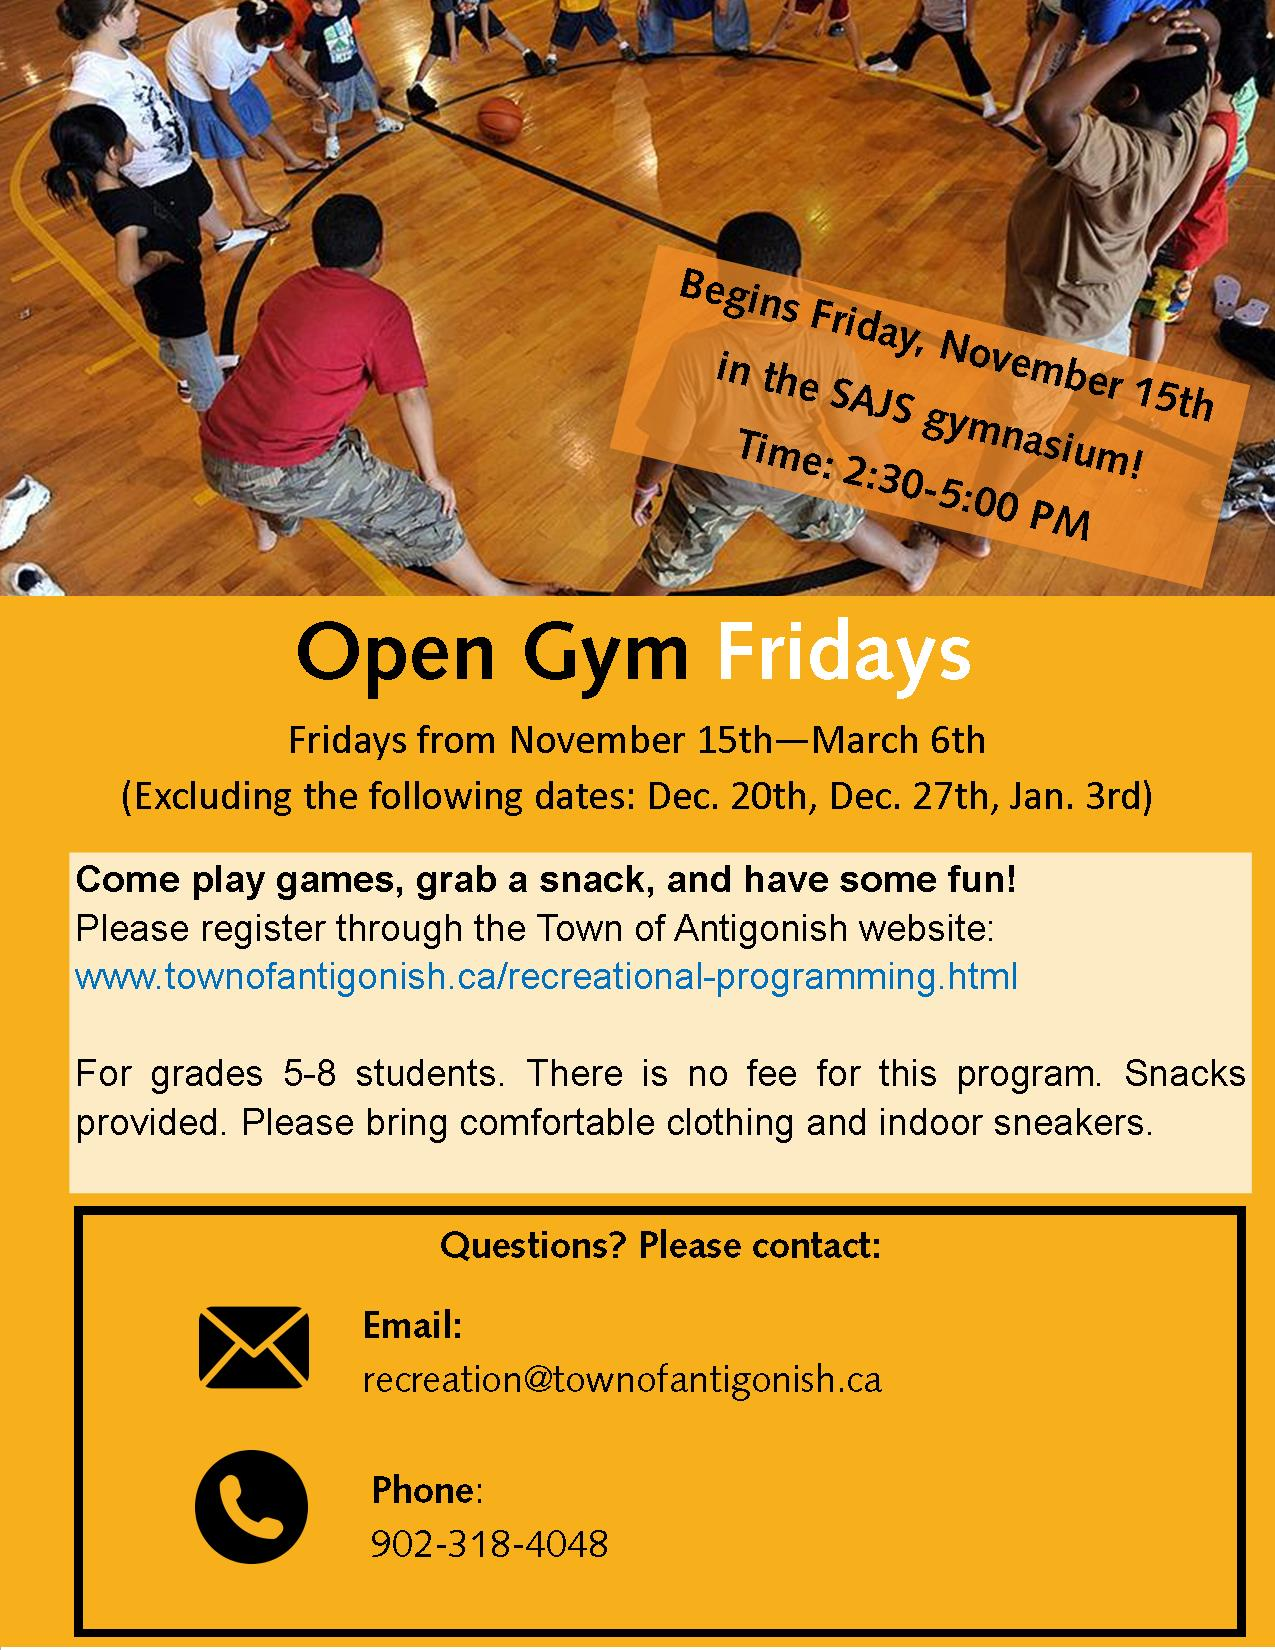 Open_Gym_Friday_2019-20_Poster.jpg